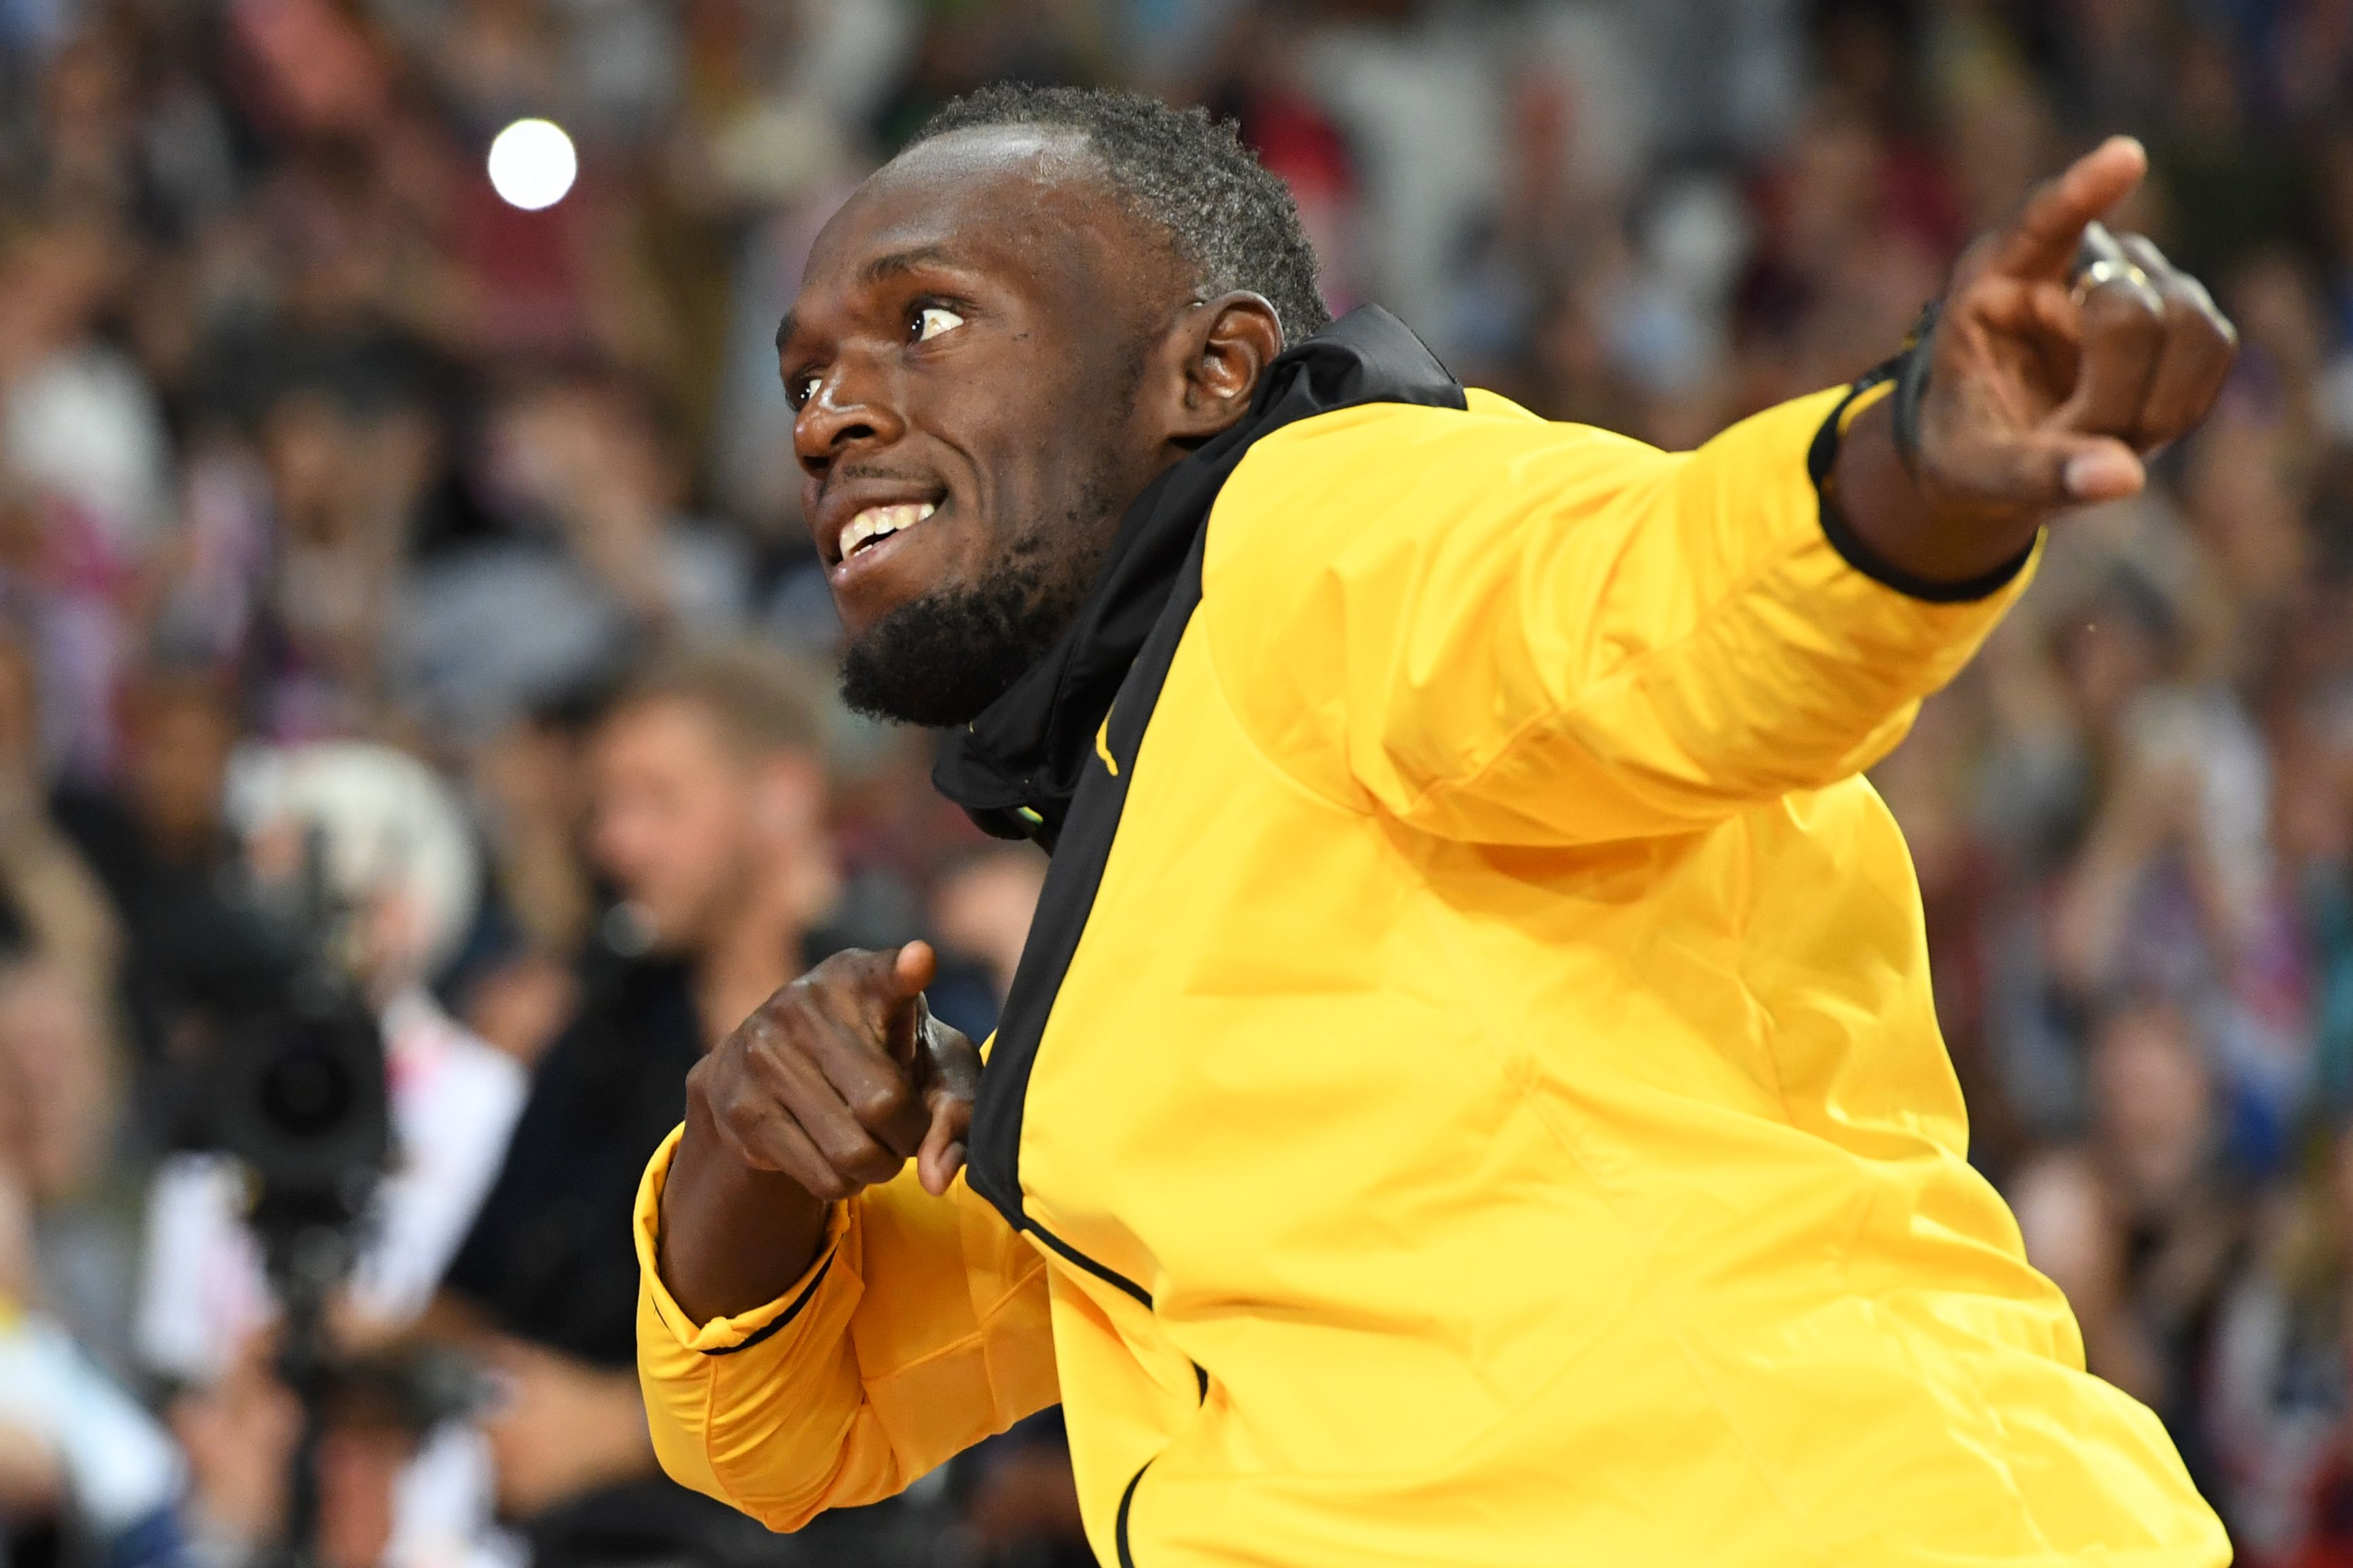 Jamaica's Usain Bolt takes part in a lap of honour on the final day of the 2017 IAAF World Championships at the London Stadium in London on August 13, 2017. / AFP PHOTO / Kirill KUDRYAVTSEV        (Photo credit should read KIRILL KUDRYAVTSEV/AFP/Getty Images)  Getty, TL